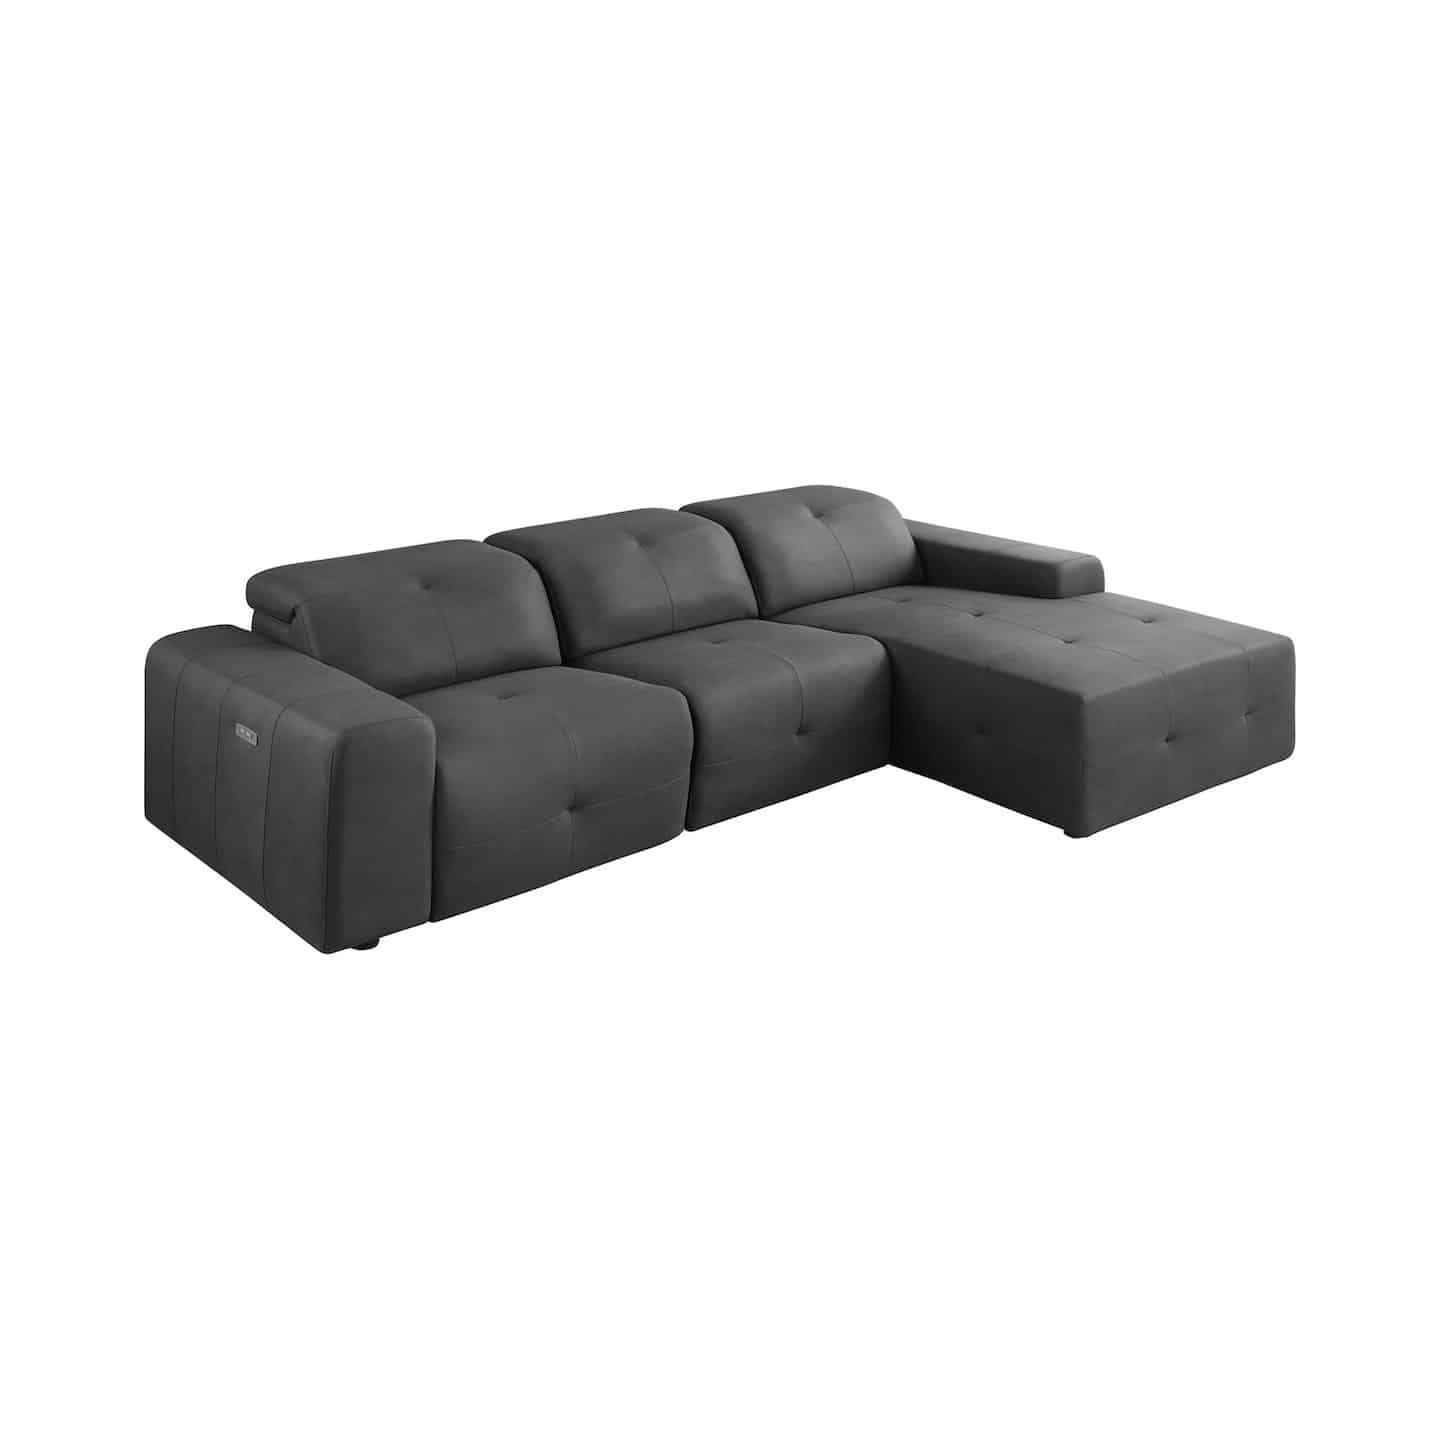 Eton Grey Modular Power Sectional Sofa Kfrooms